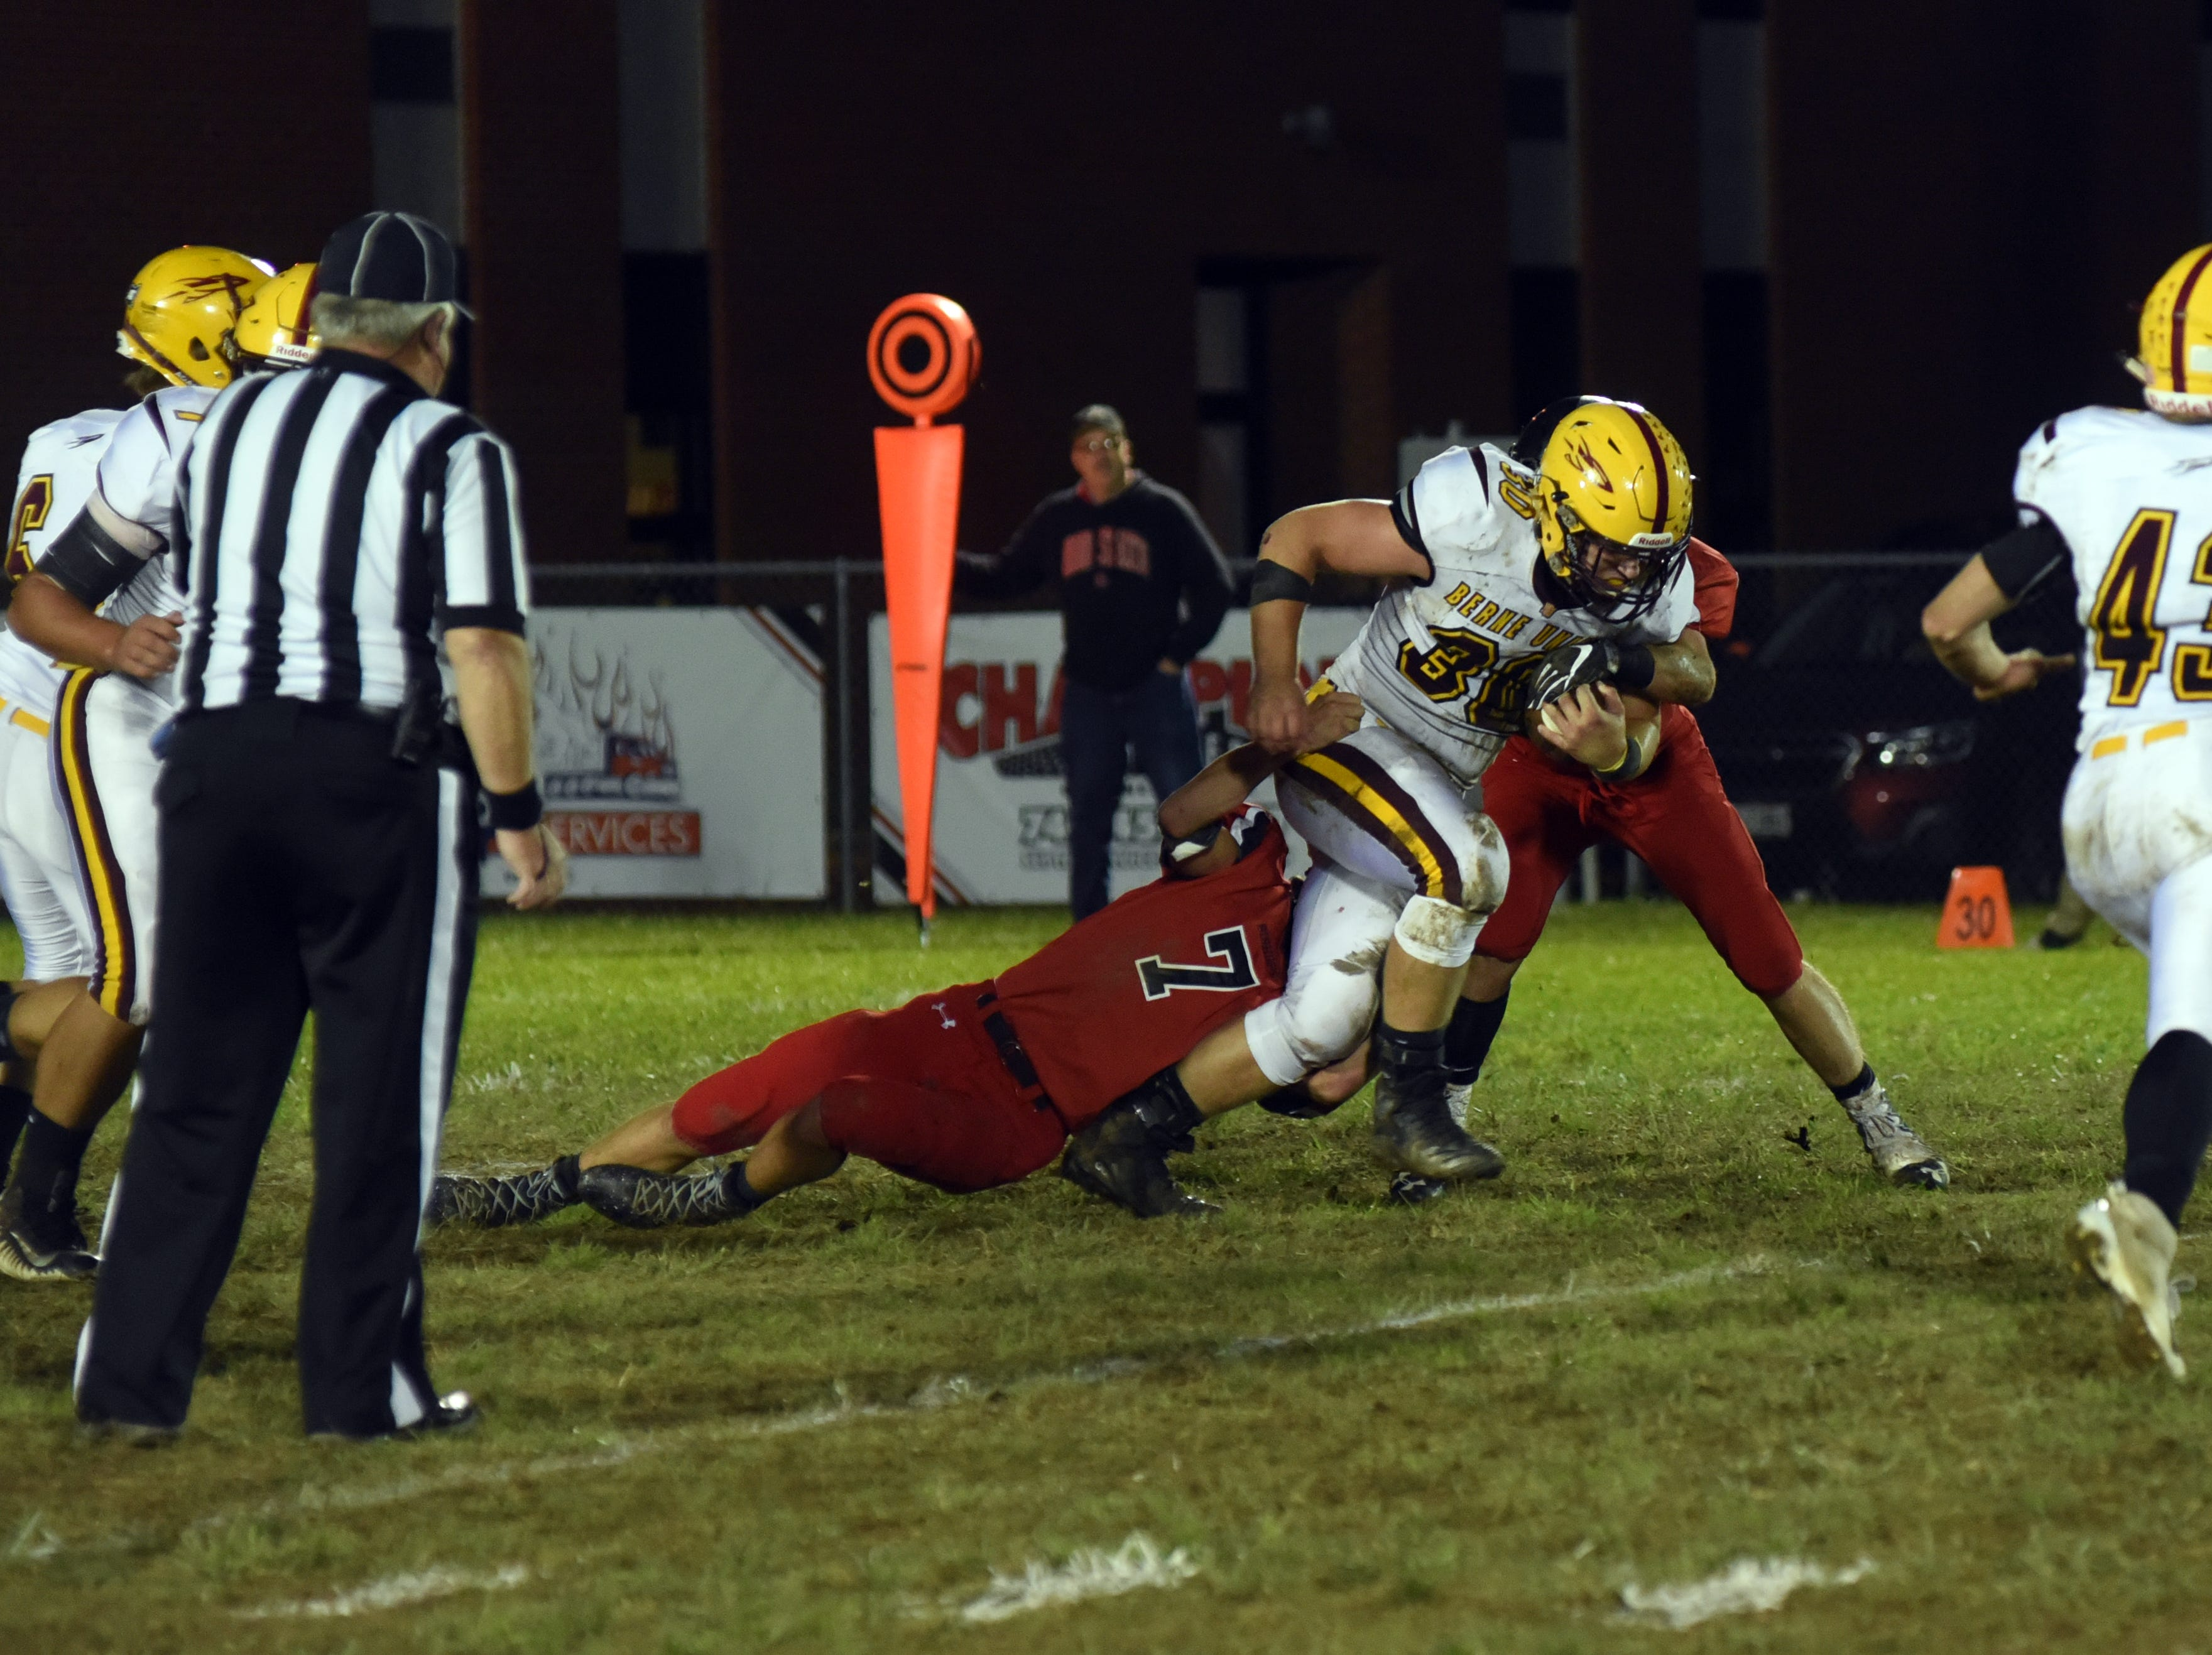 Berne Union's Chaz Dickerson fights off a Carter Dosch tackle in Berne Union's 41-14 win on Friday.